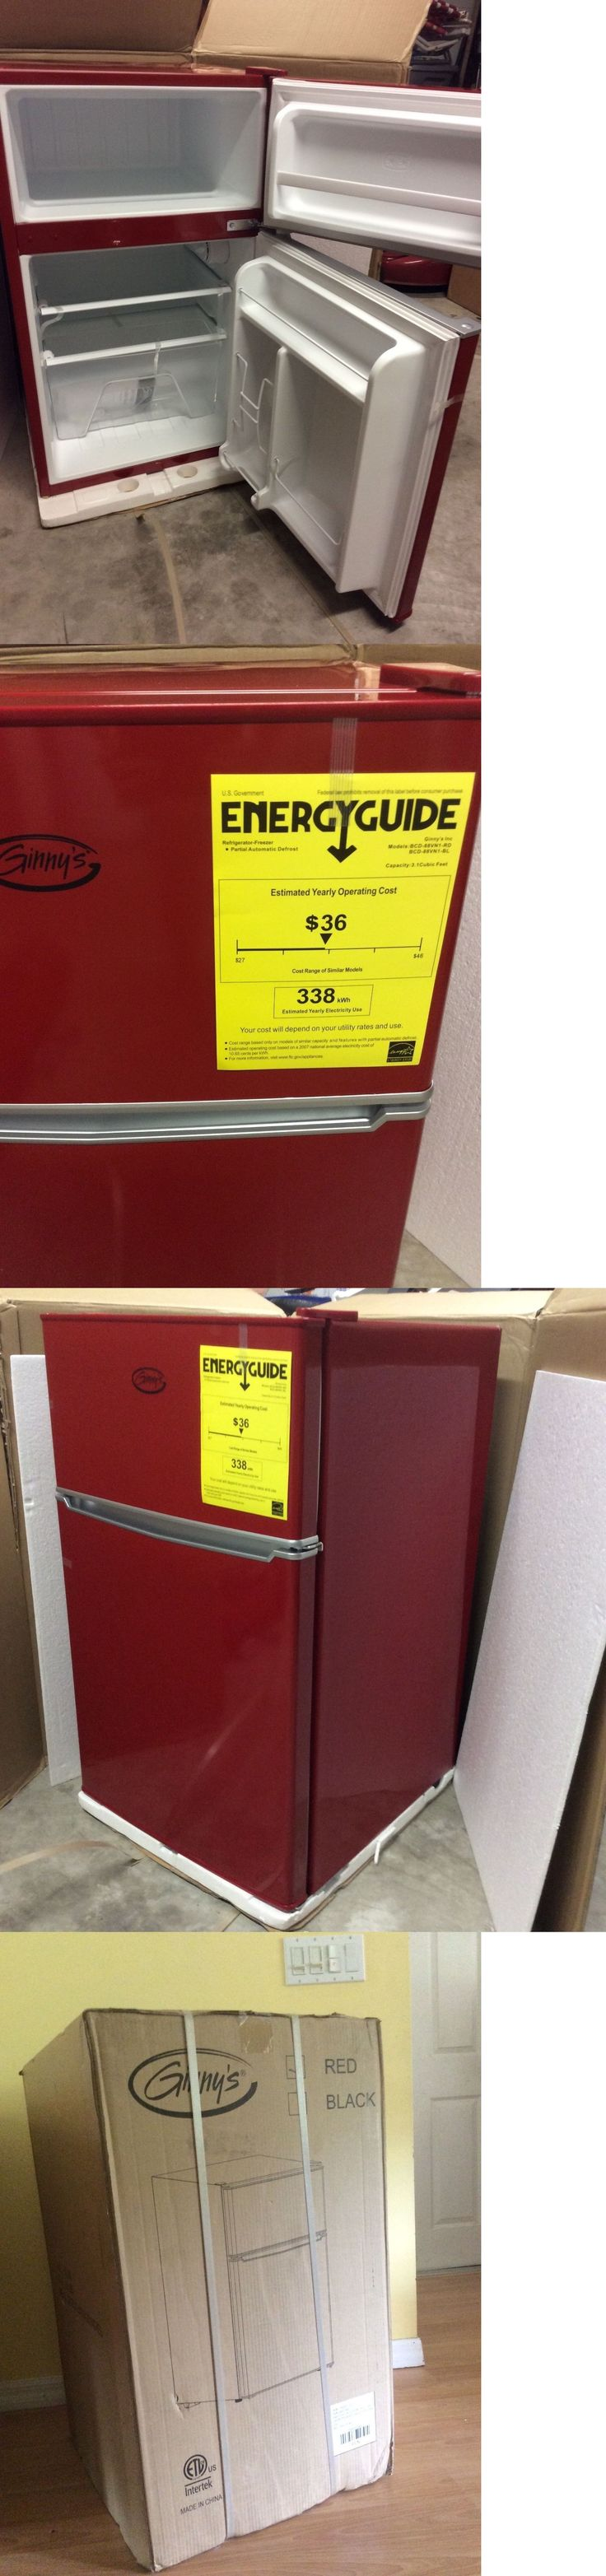 Mini Fridges 71262: New! Red 3.1 Cu. Ft.Mini Compact Refrigerator With Freezer Still In Box!! -> BUY IT NOW ONLY: $175 on eBay!